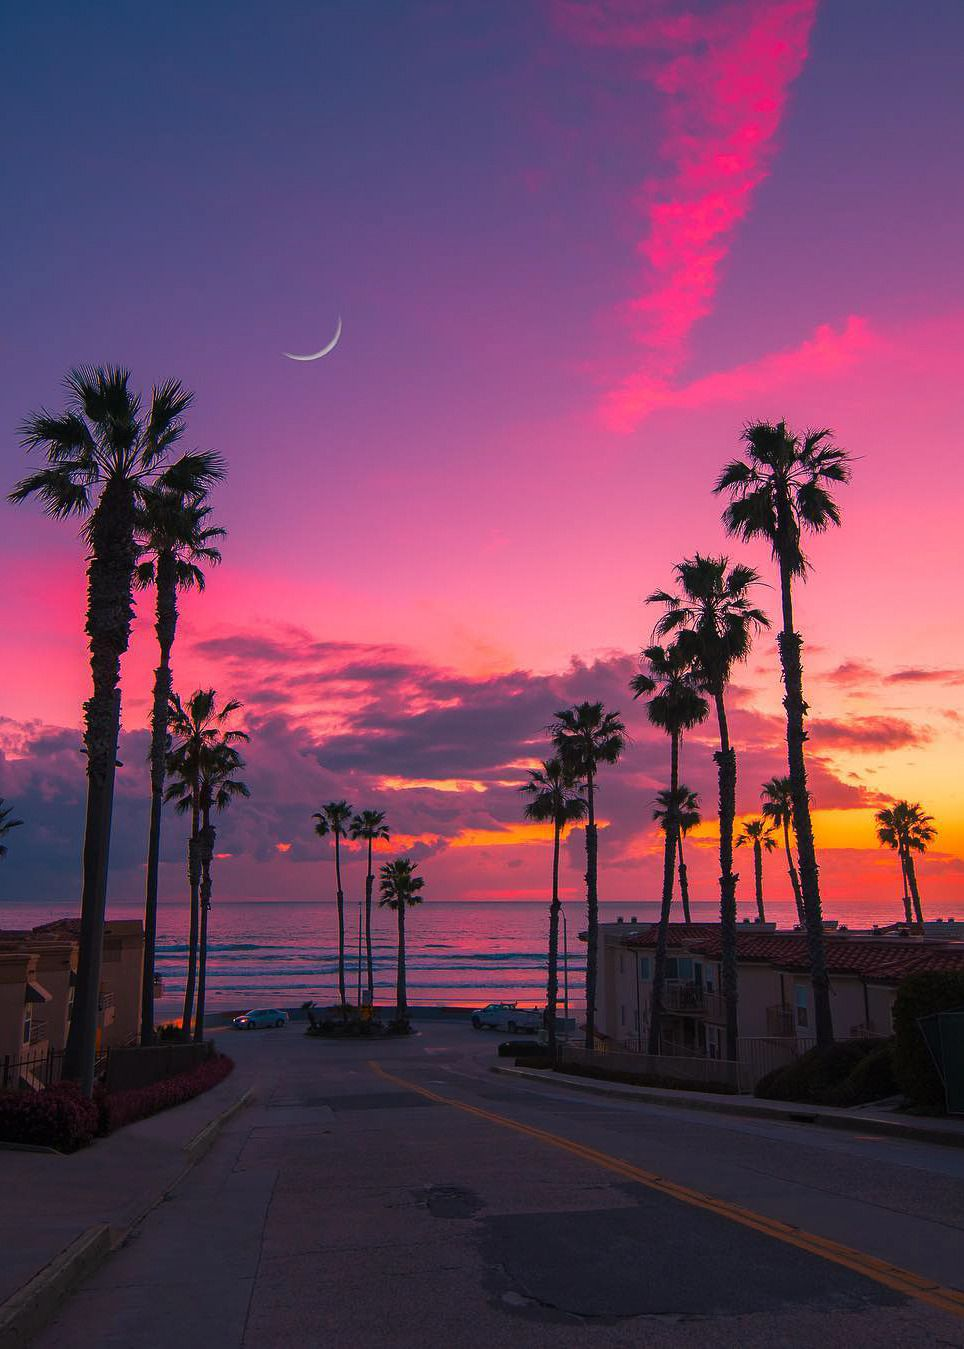 That Travel Aesthetic — coiourmyworld San Diego